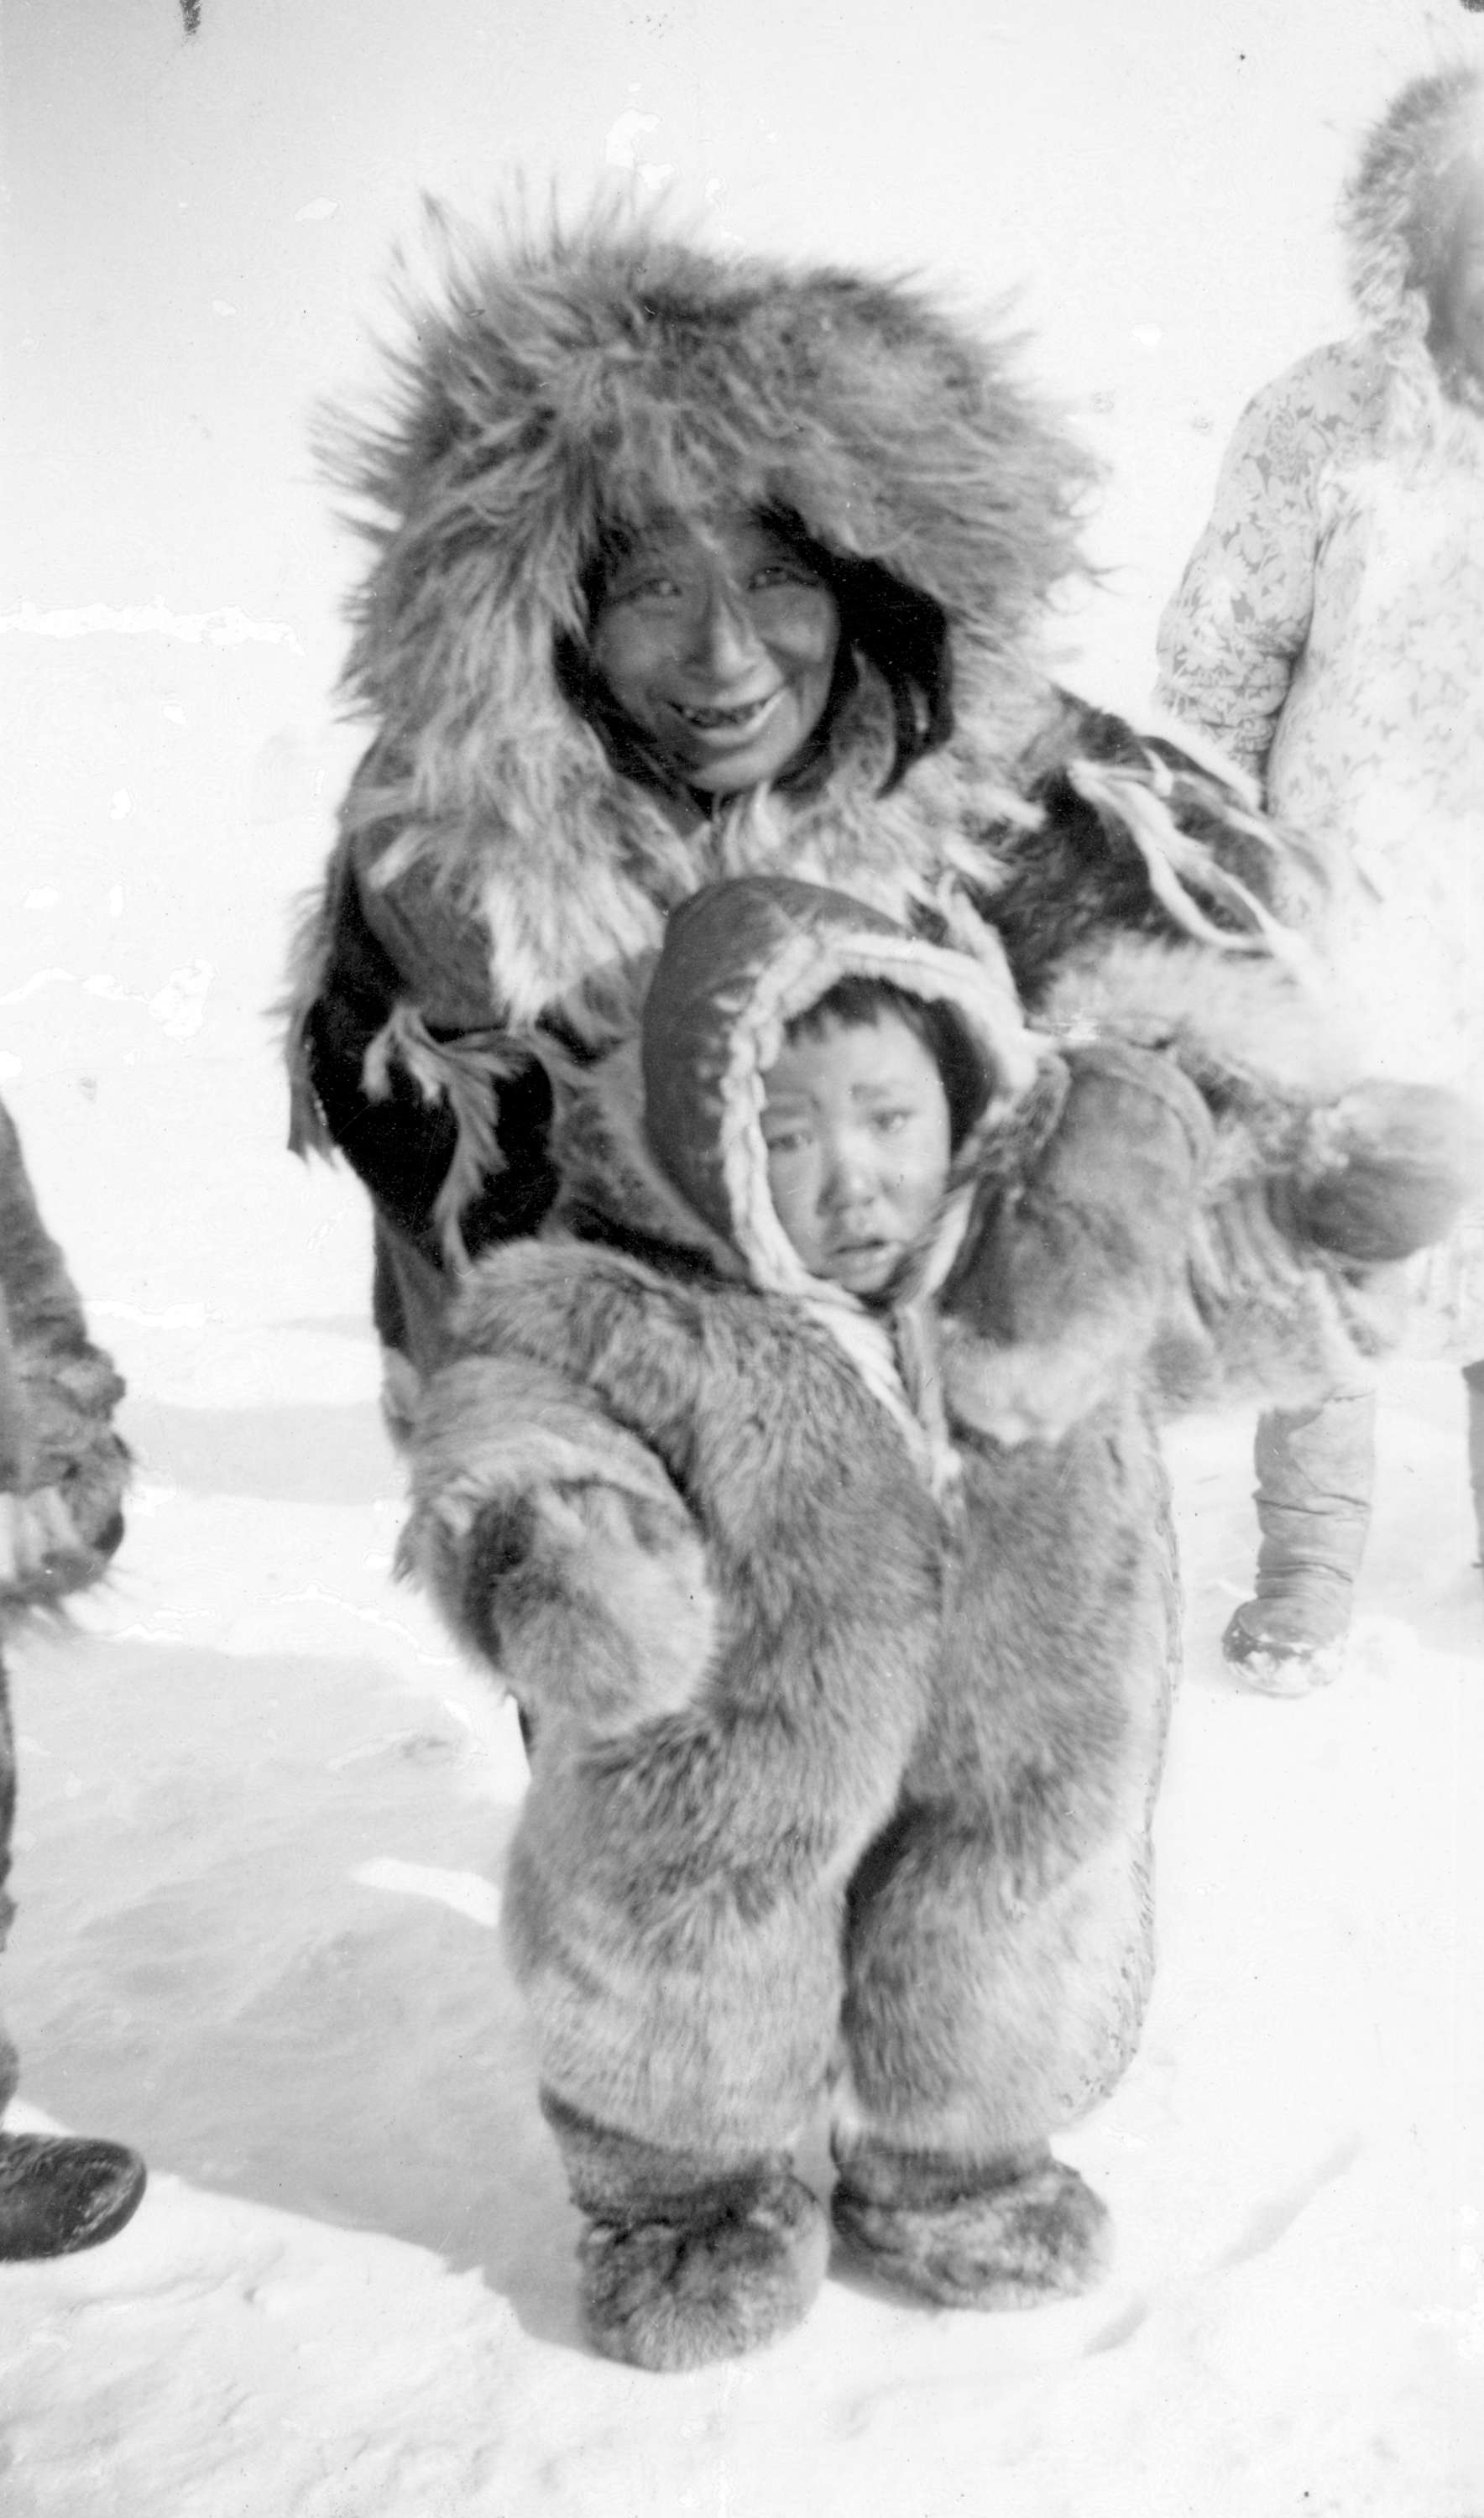 eskimo grandmother and child wearing fur clothing city of